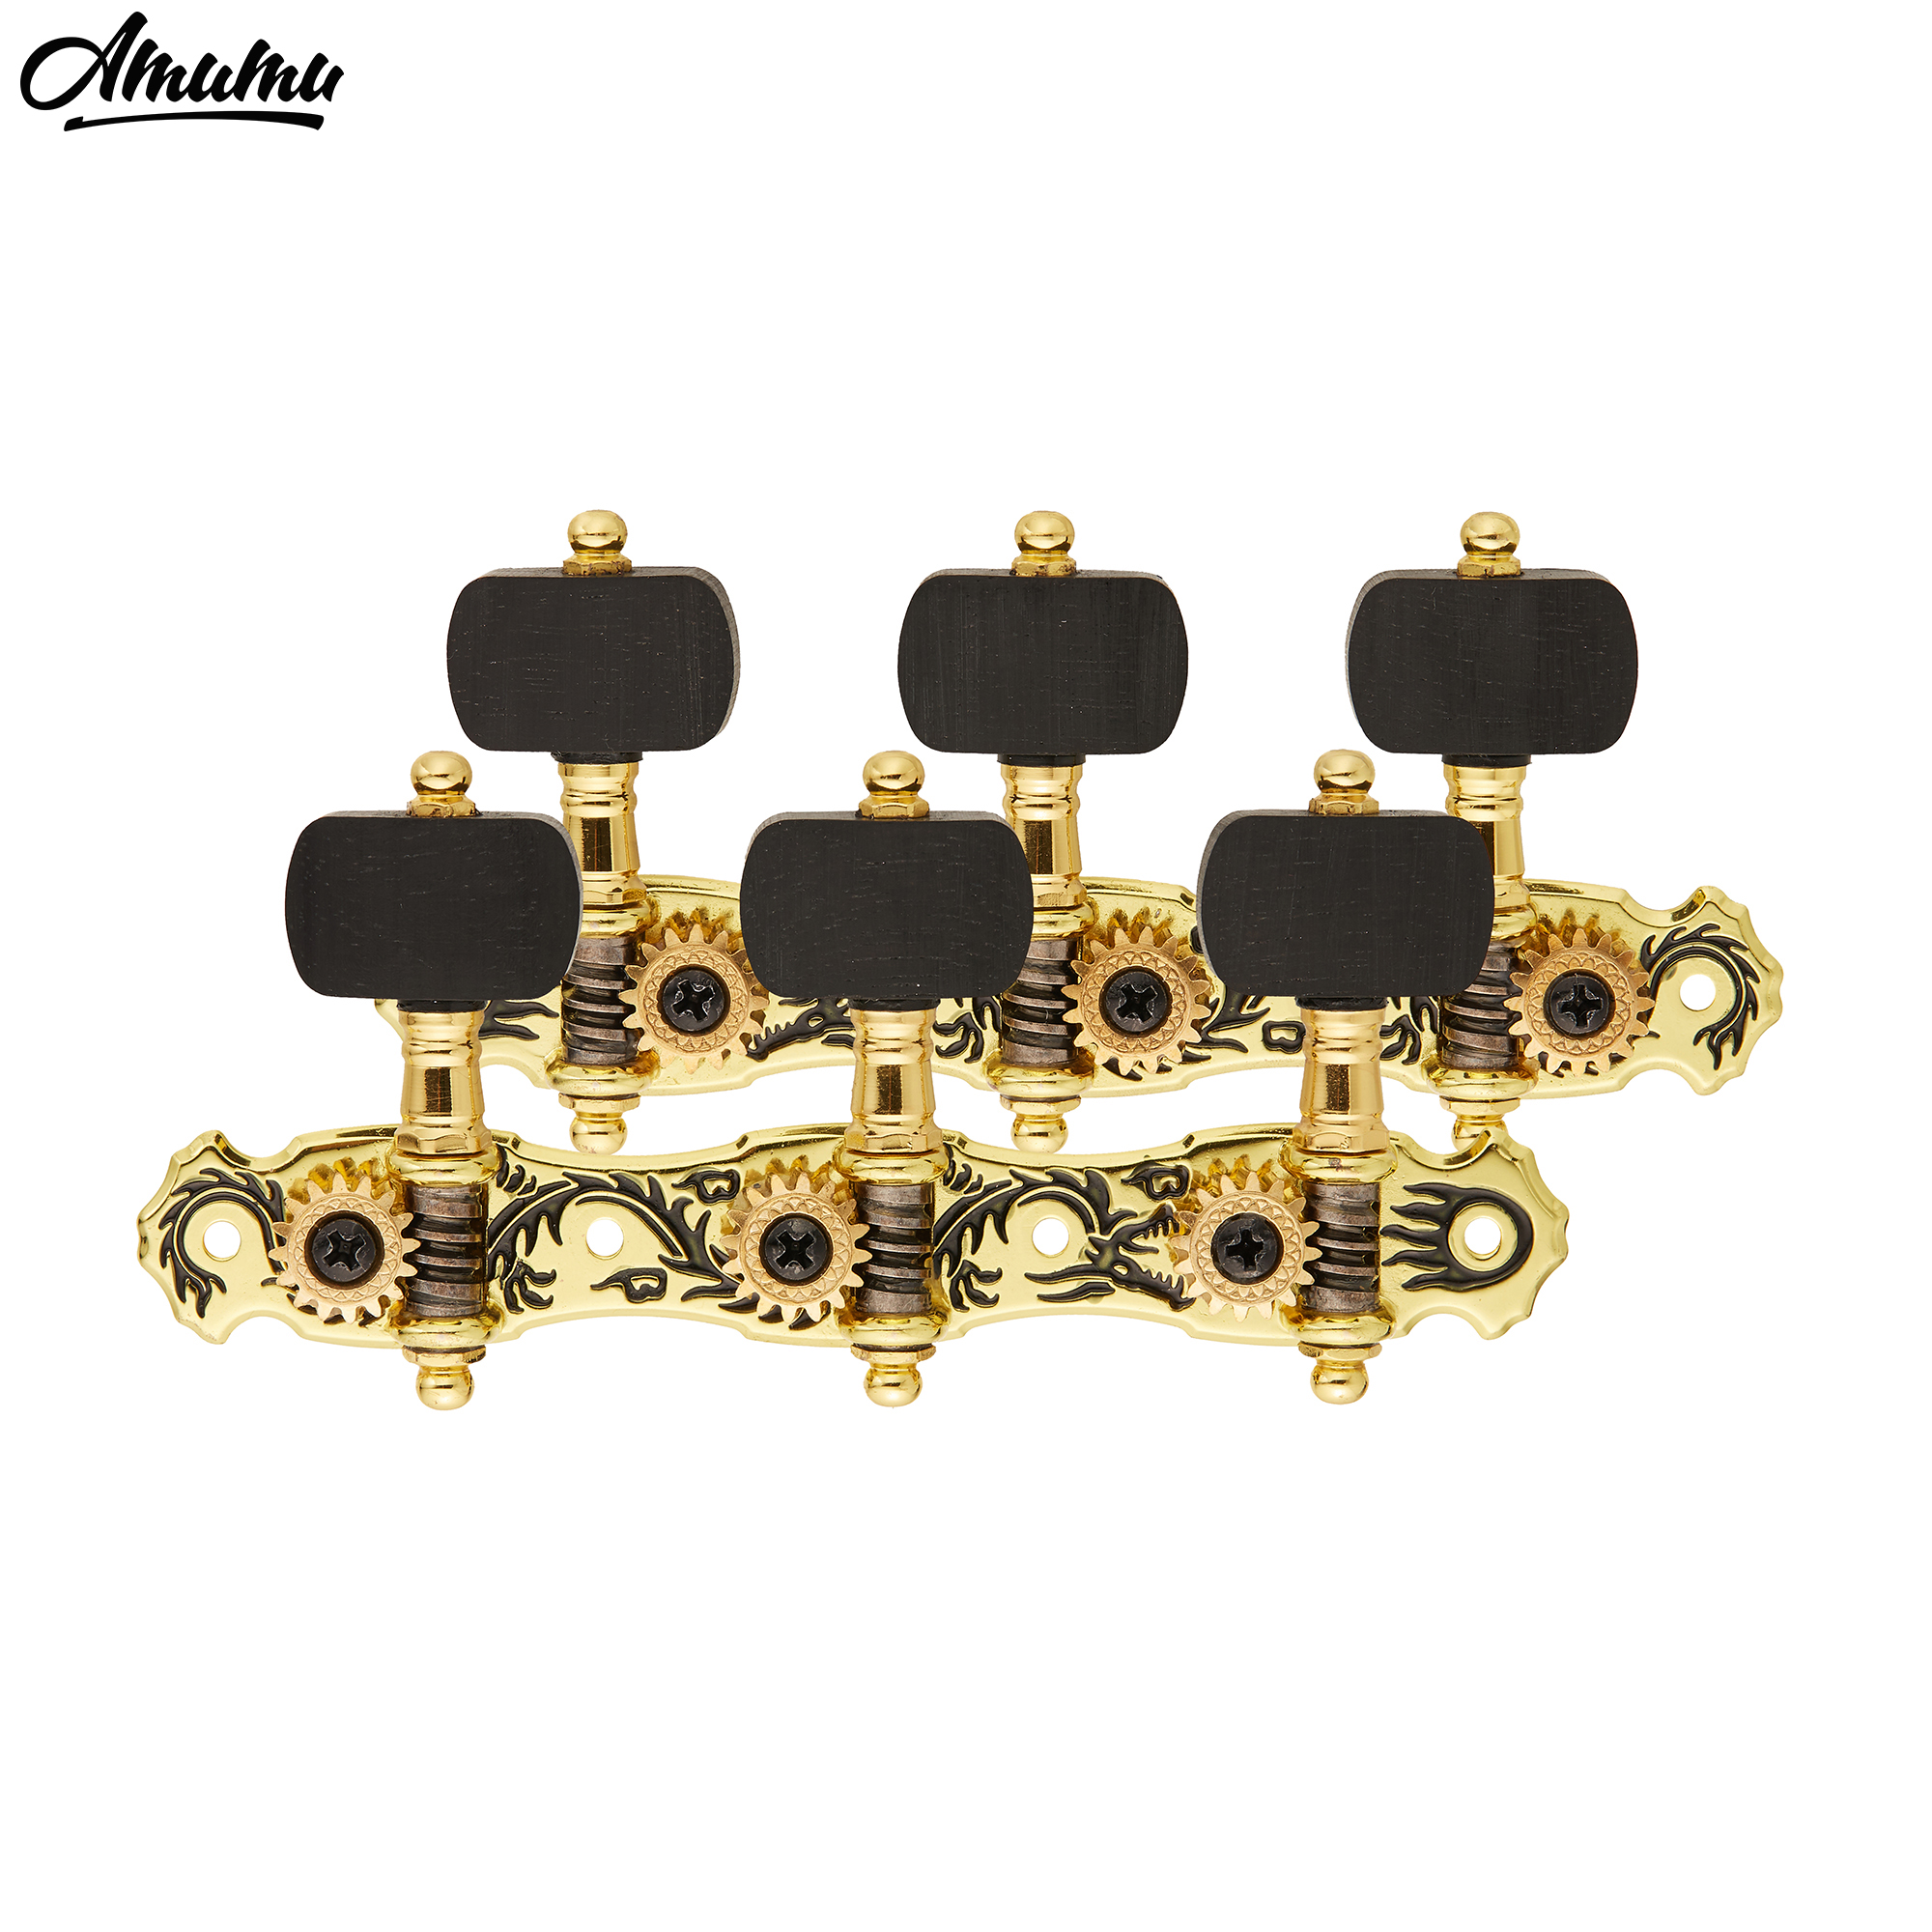 Gold Plated Black Dragon Guitar Machine Heads Classical Guitar Tuning Pegs Tuner Keys with Ebony Knob  3L and 3R professional new silver plated trumpet bb keys with monel valves horn case